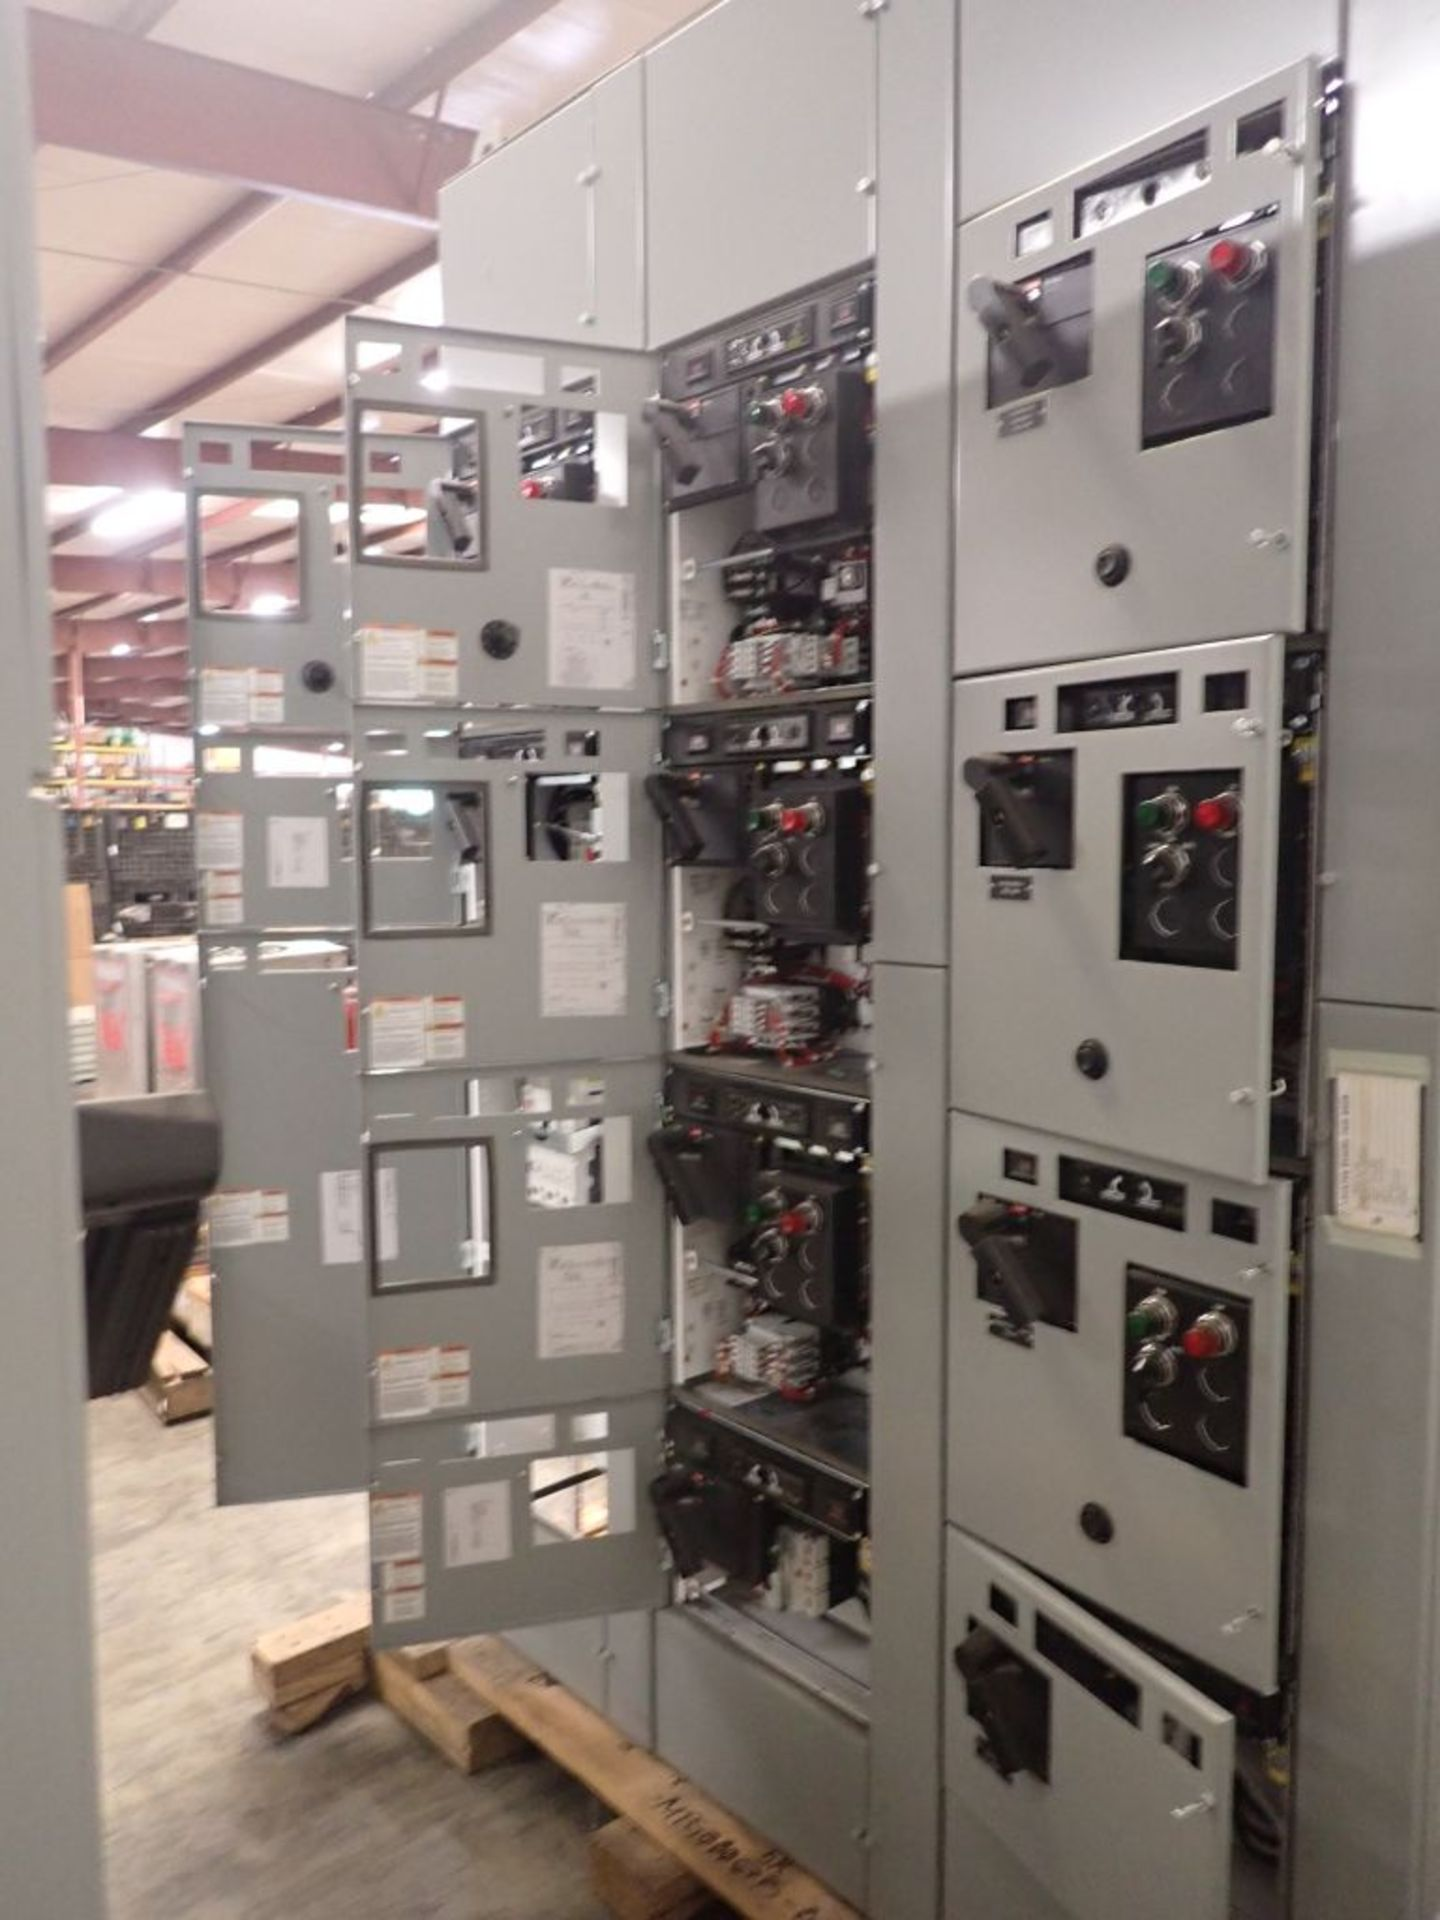 Eaton Freedom 2100 Series Motor Control Center | (2) F206-15A-10HP; (1) FDRB-250A; (1) FDRB-400A; ( - Image 10 of 104